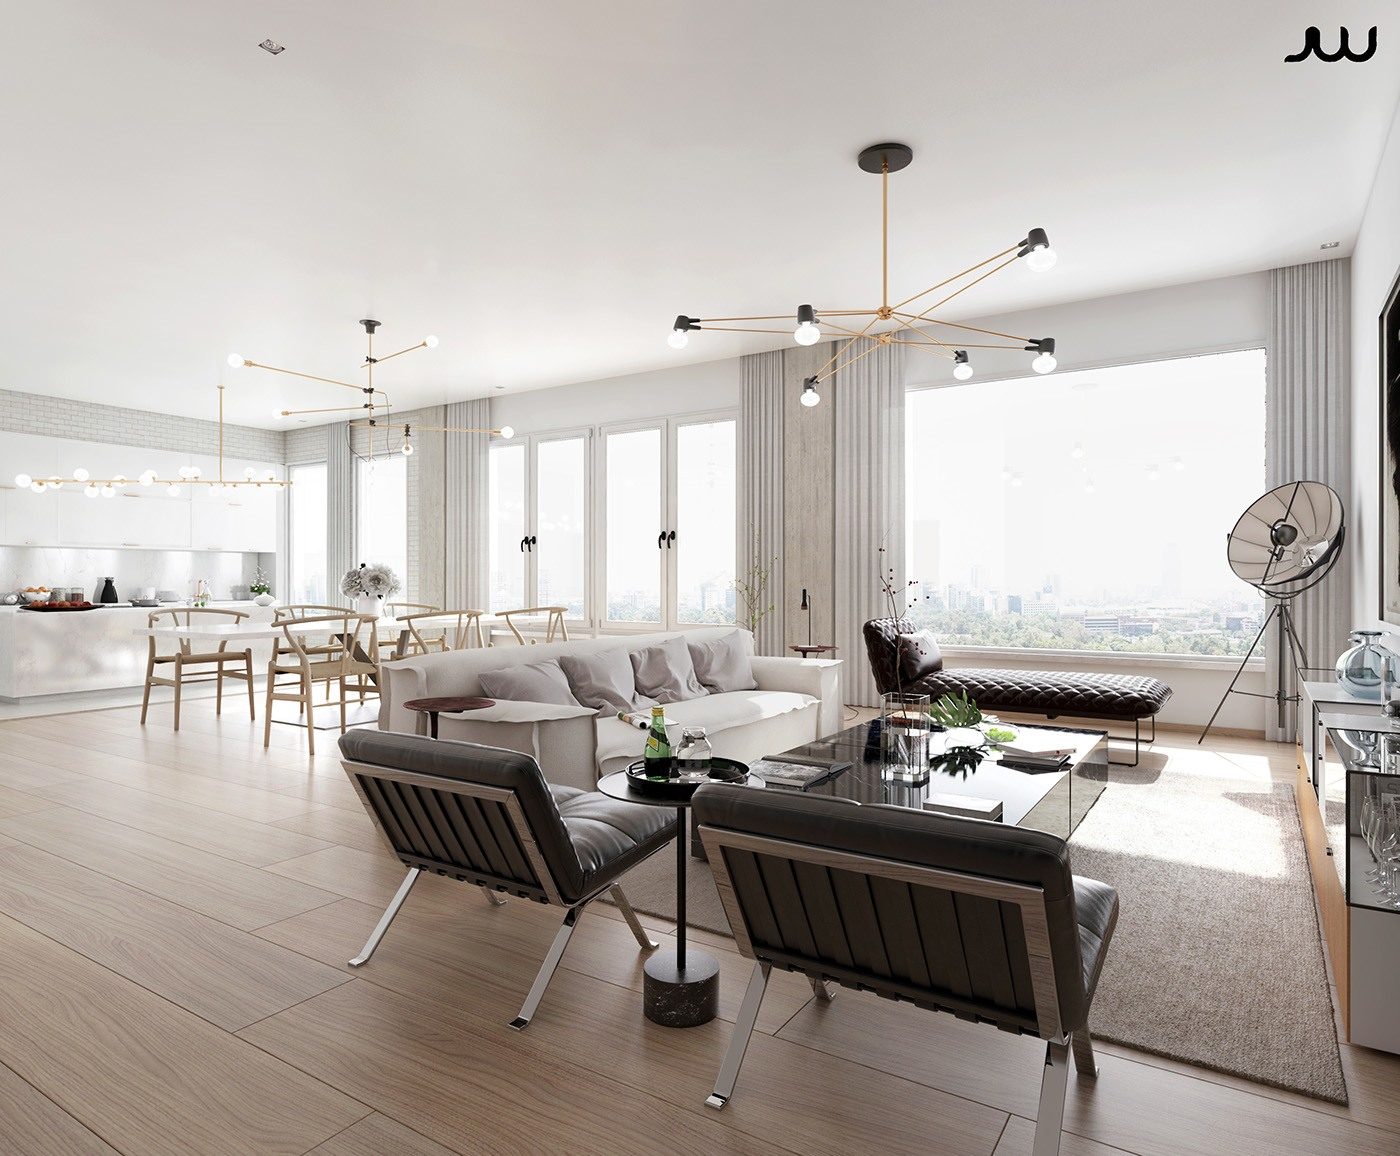 Awesome Luxury Apartment Design Ideas by Javier Wainstein   RooHome